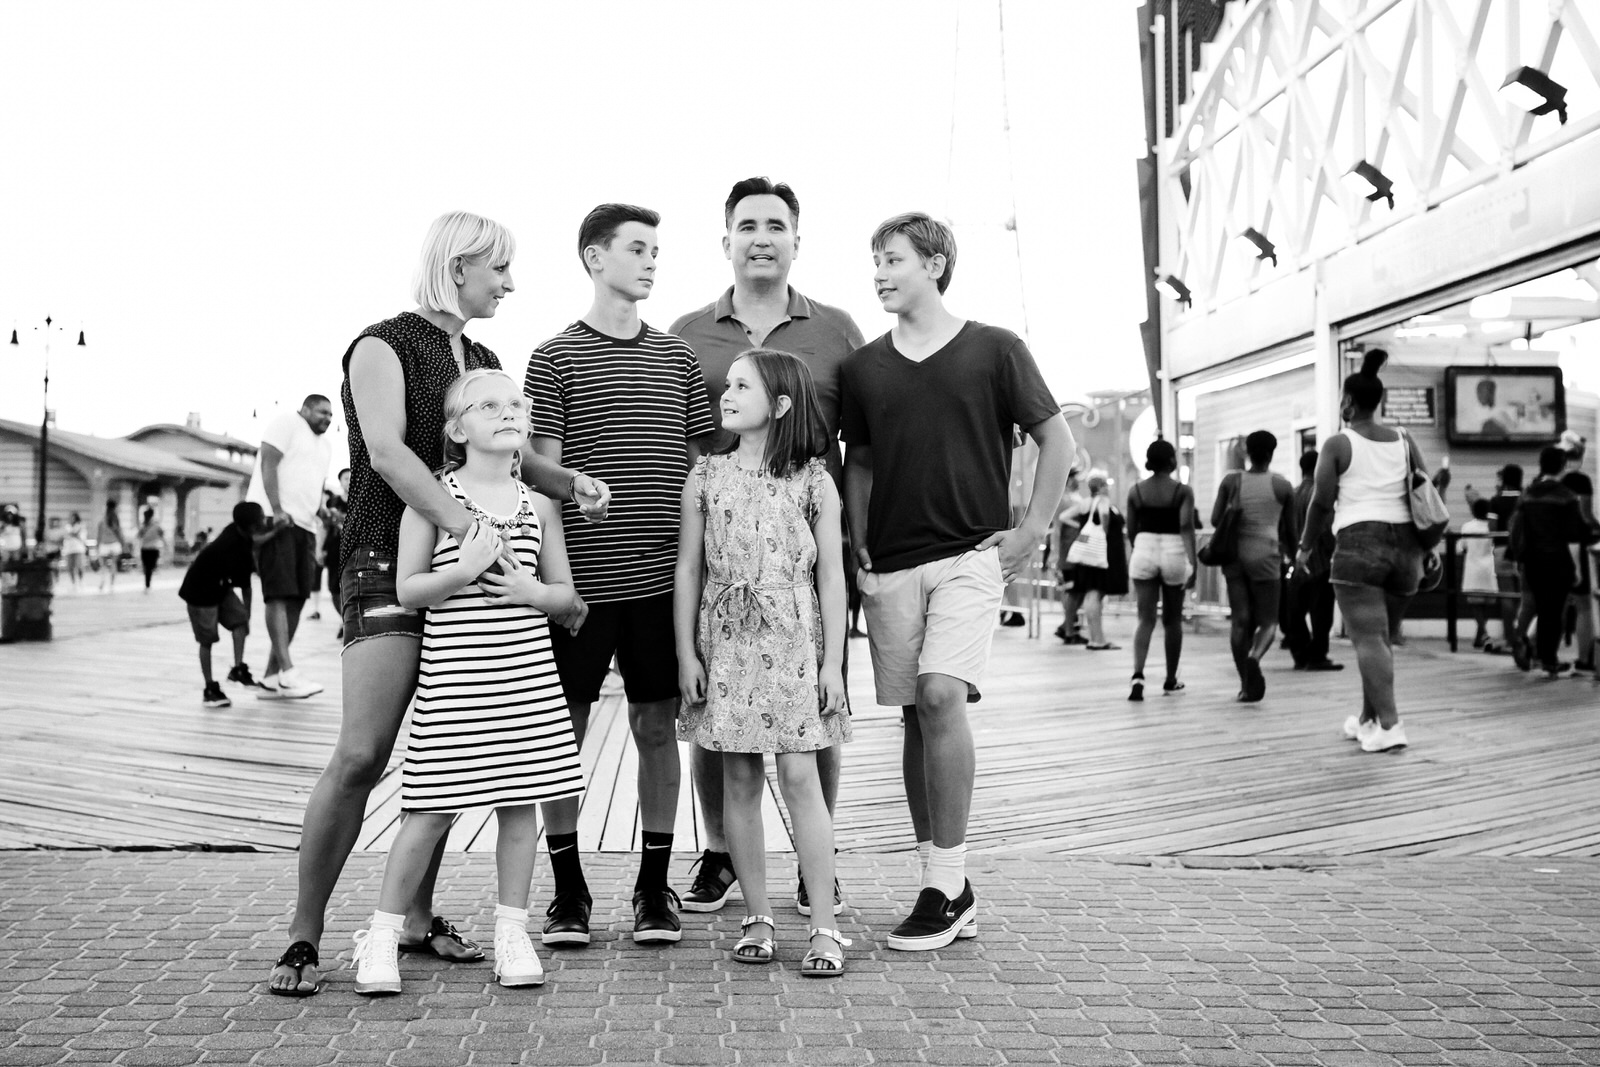 coney-island-day-in-life-family-photography-43.JPG